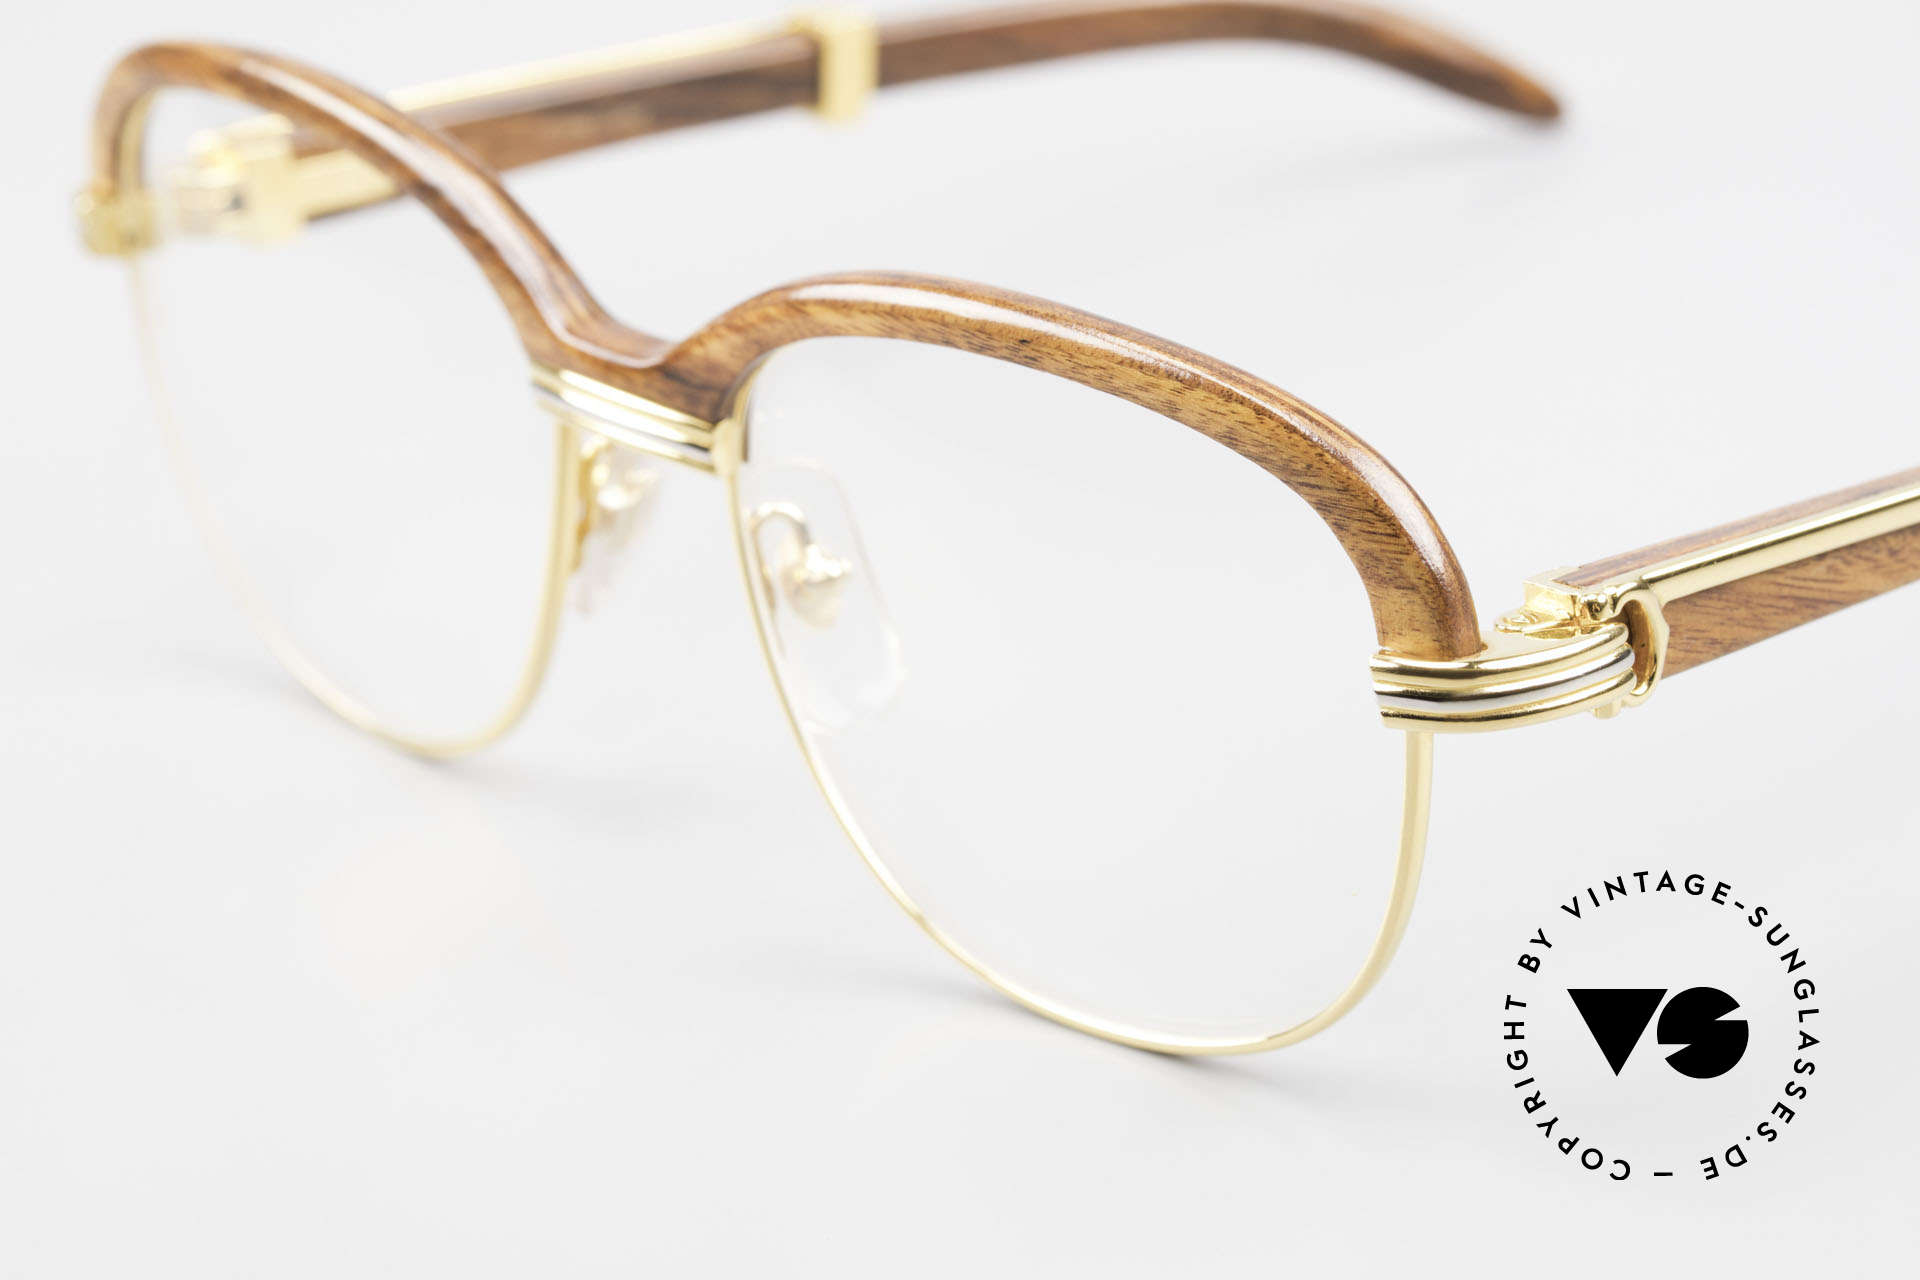 Cartier Malmaison Diego Maradona Wood Glasses, noble rarity in perfect unworn condition; pure luxury, Made for Men and Women